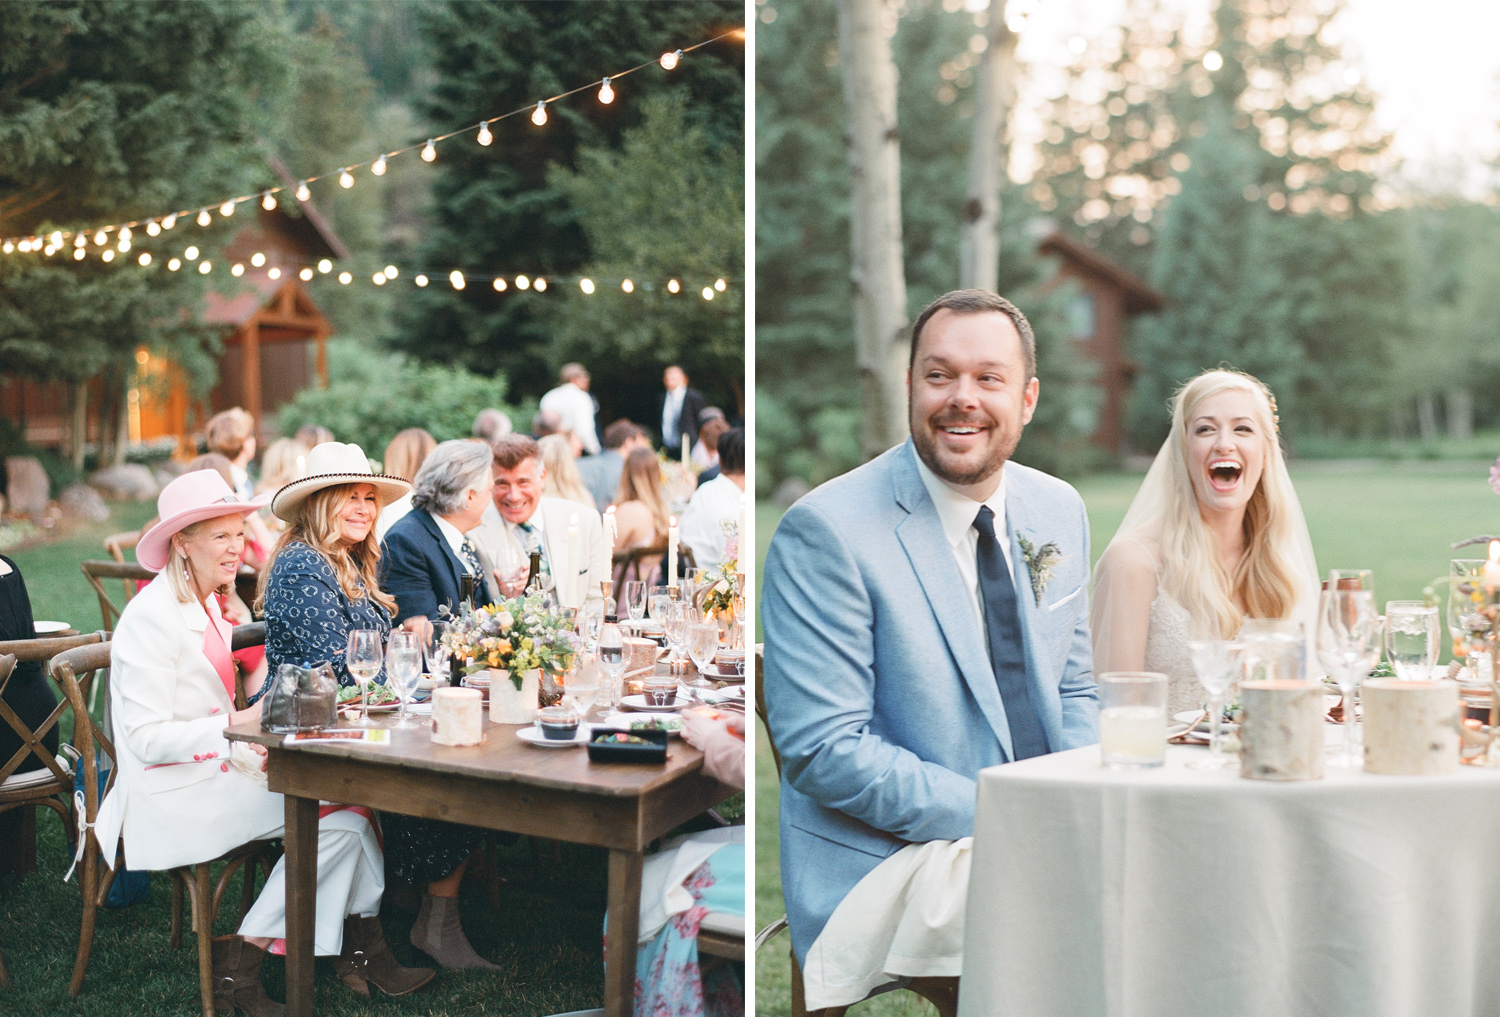 Famous guests and famous couple enjoy wedding dinner under twinkling lights in wyoming, Sylvie Gil Photography